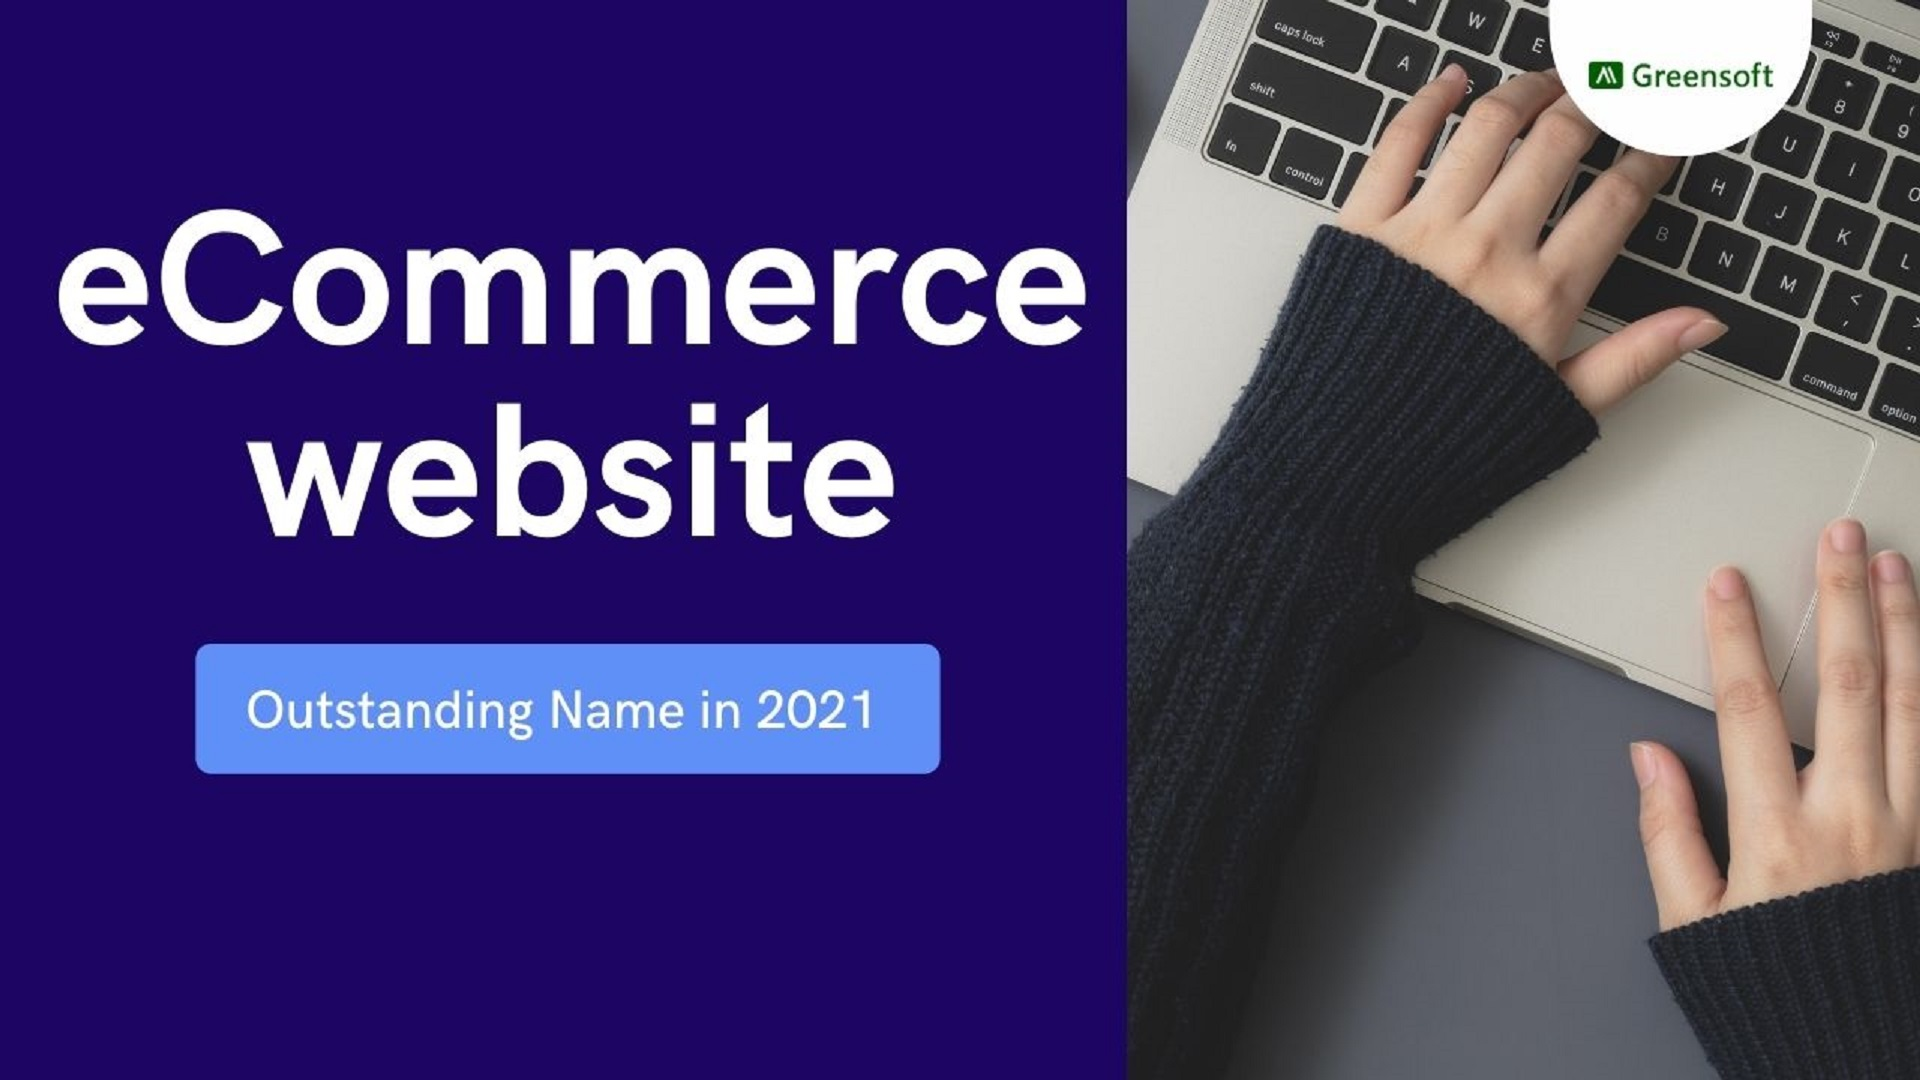 eCommerce website Name